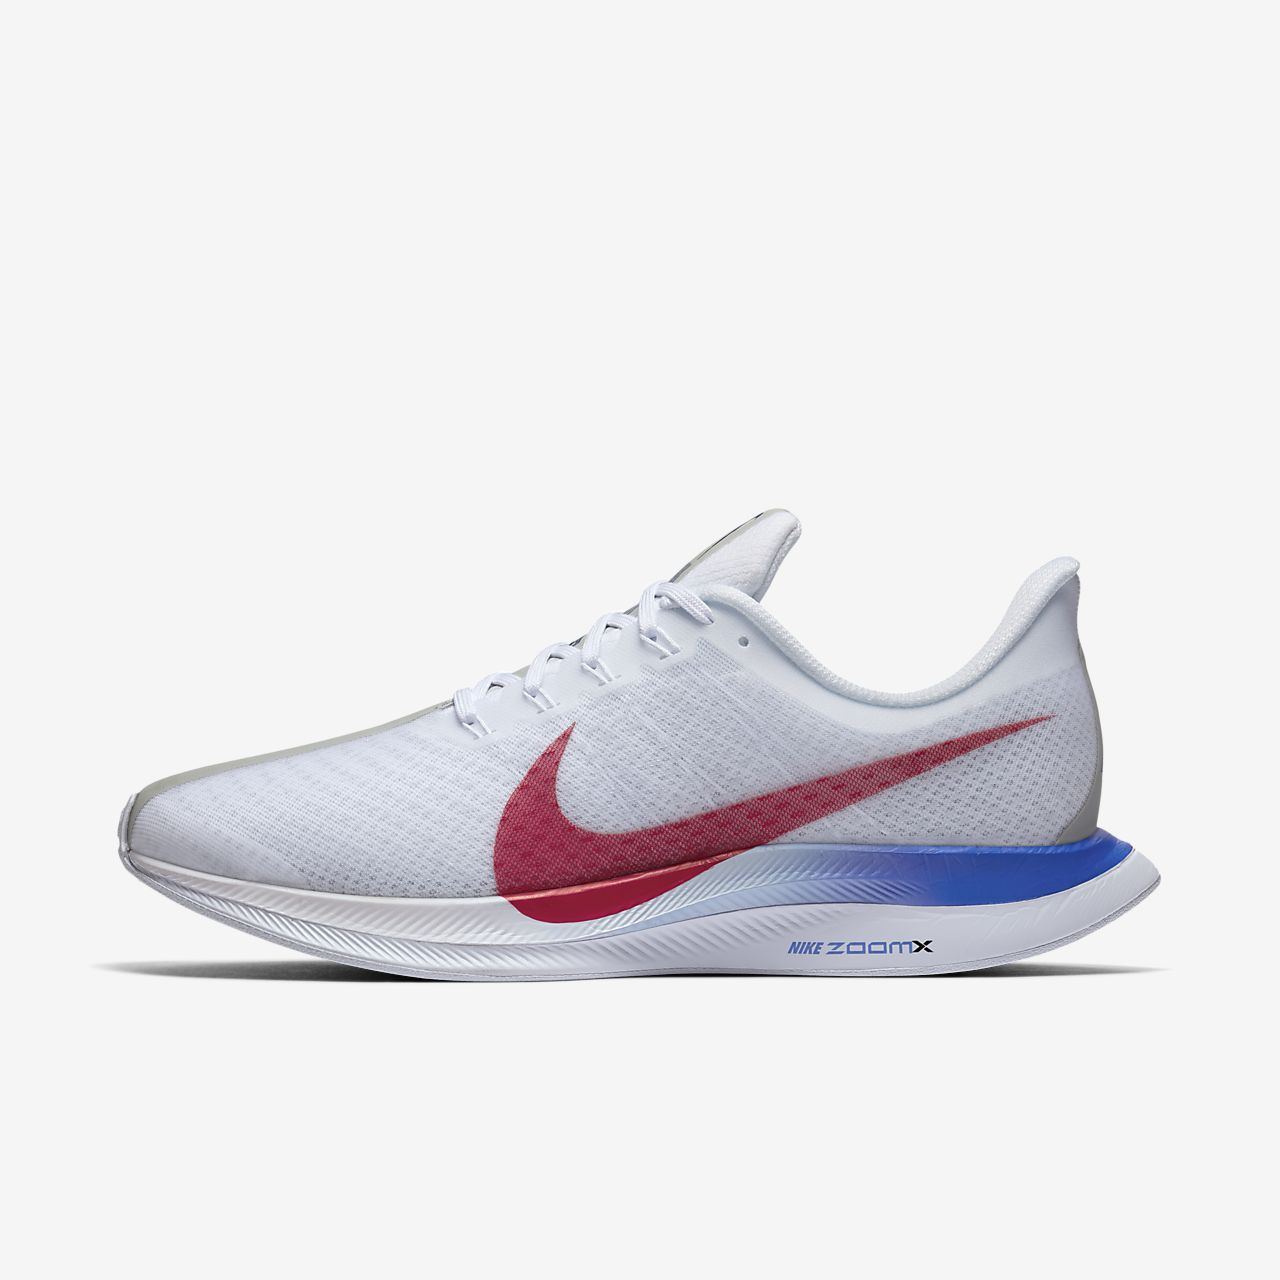 Chaussure de running Nike Zoom Pegasus 35 Turbo BRS pour Homme